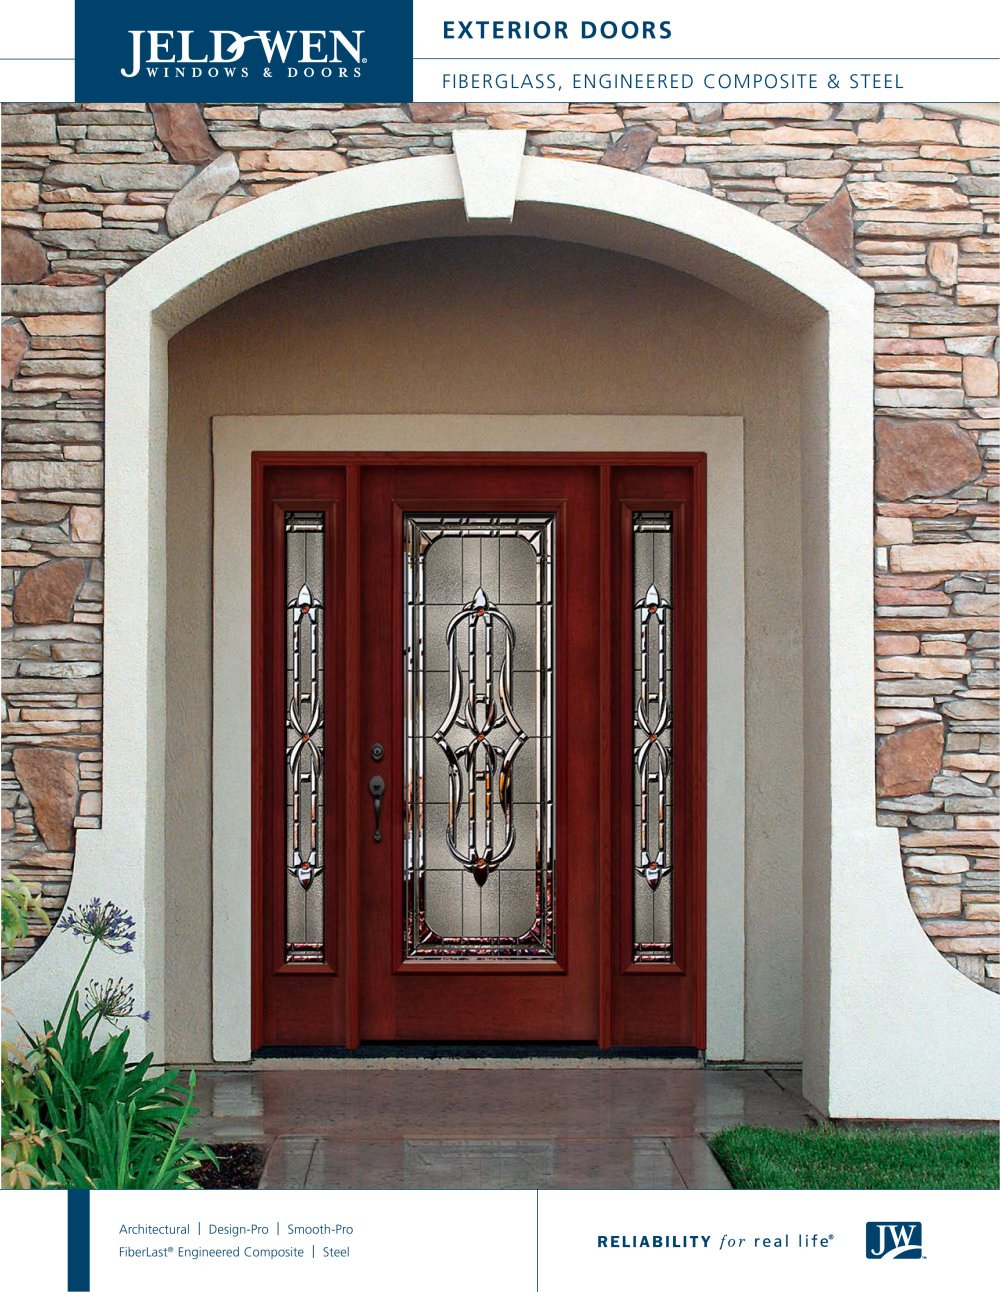 Modular Fiberglass And Steel Exterior Doors - Jeld-Wen - Pdf Catalogues throughout Window Design Catalogue